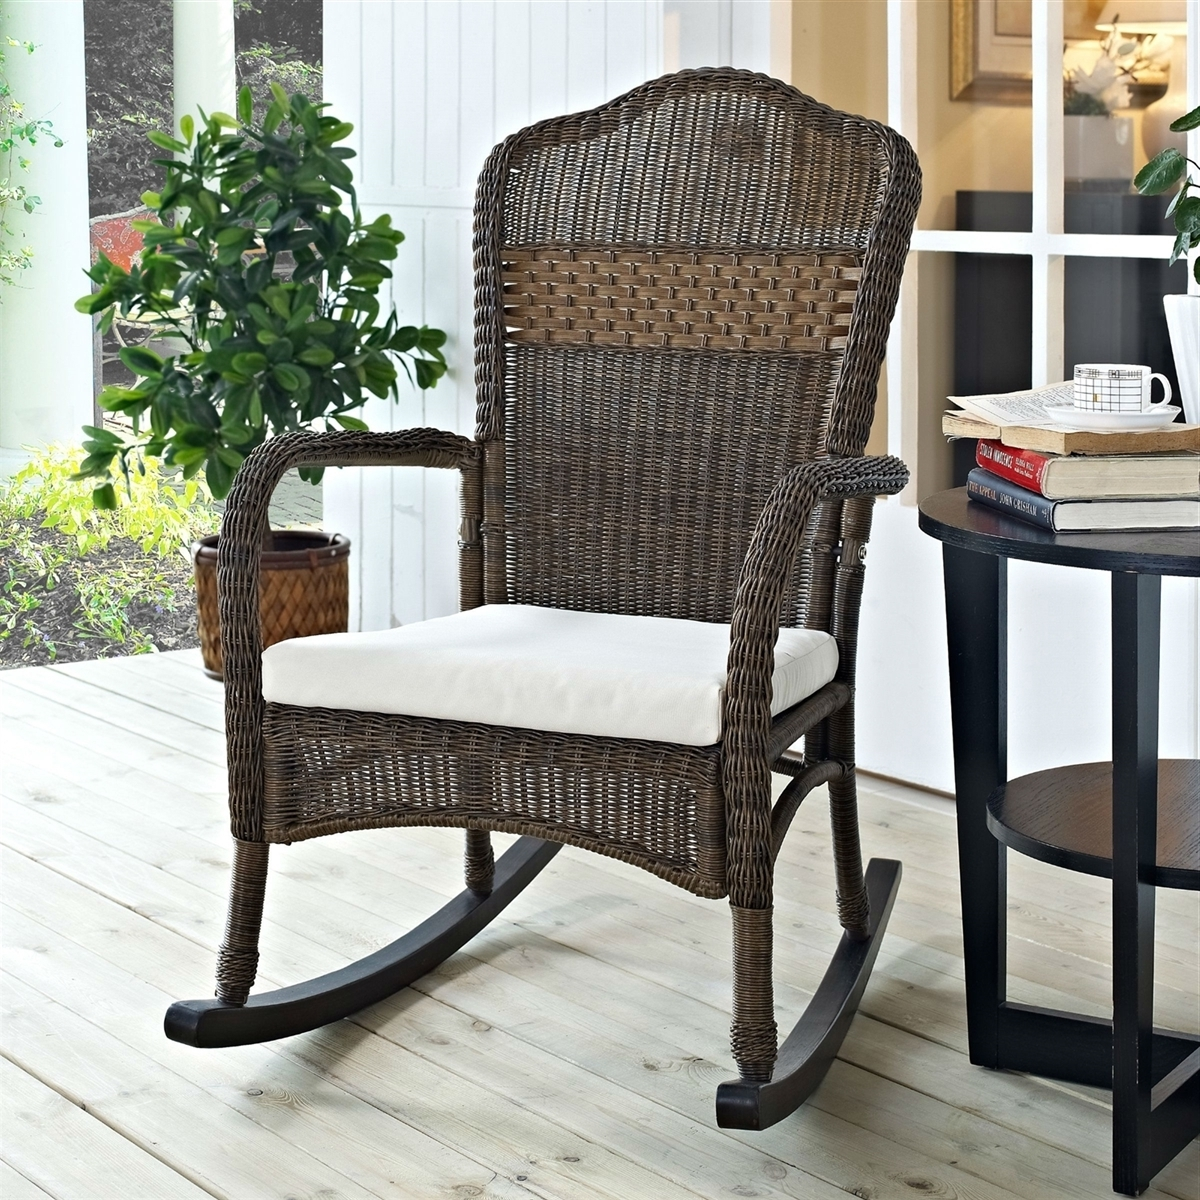 Wicker Patio Furniture Rocking Chair Mocha With Beige Cushion With Regard To Trendy Brown Wicker Patio Rocking Chairs (View 15 of 15)